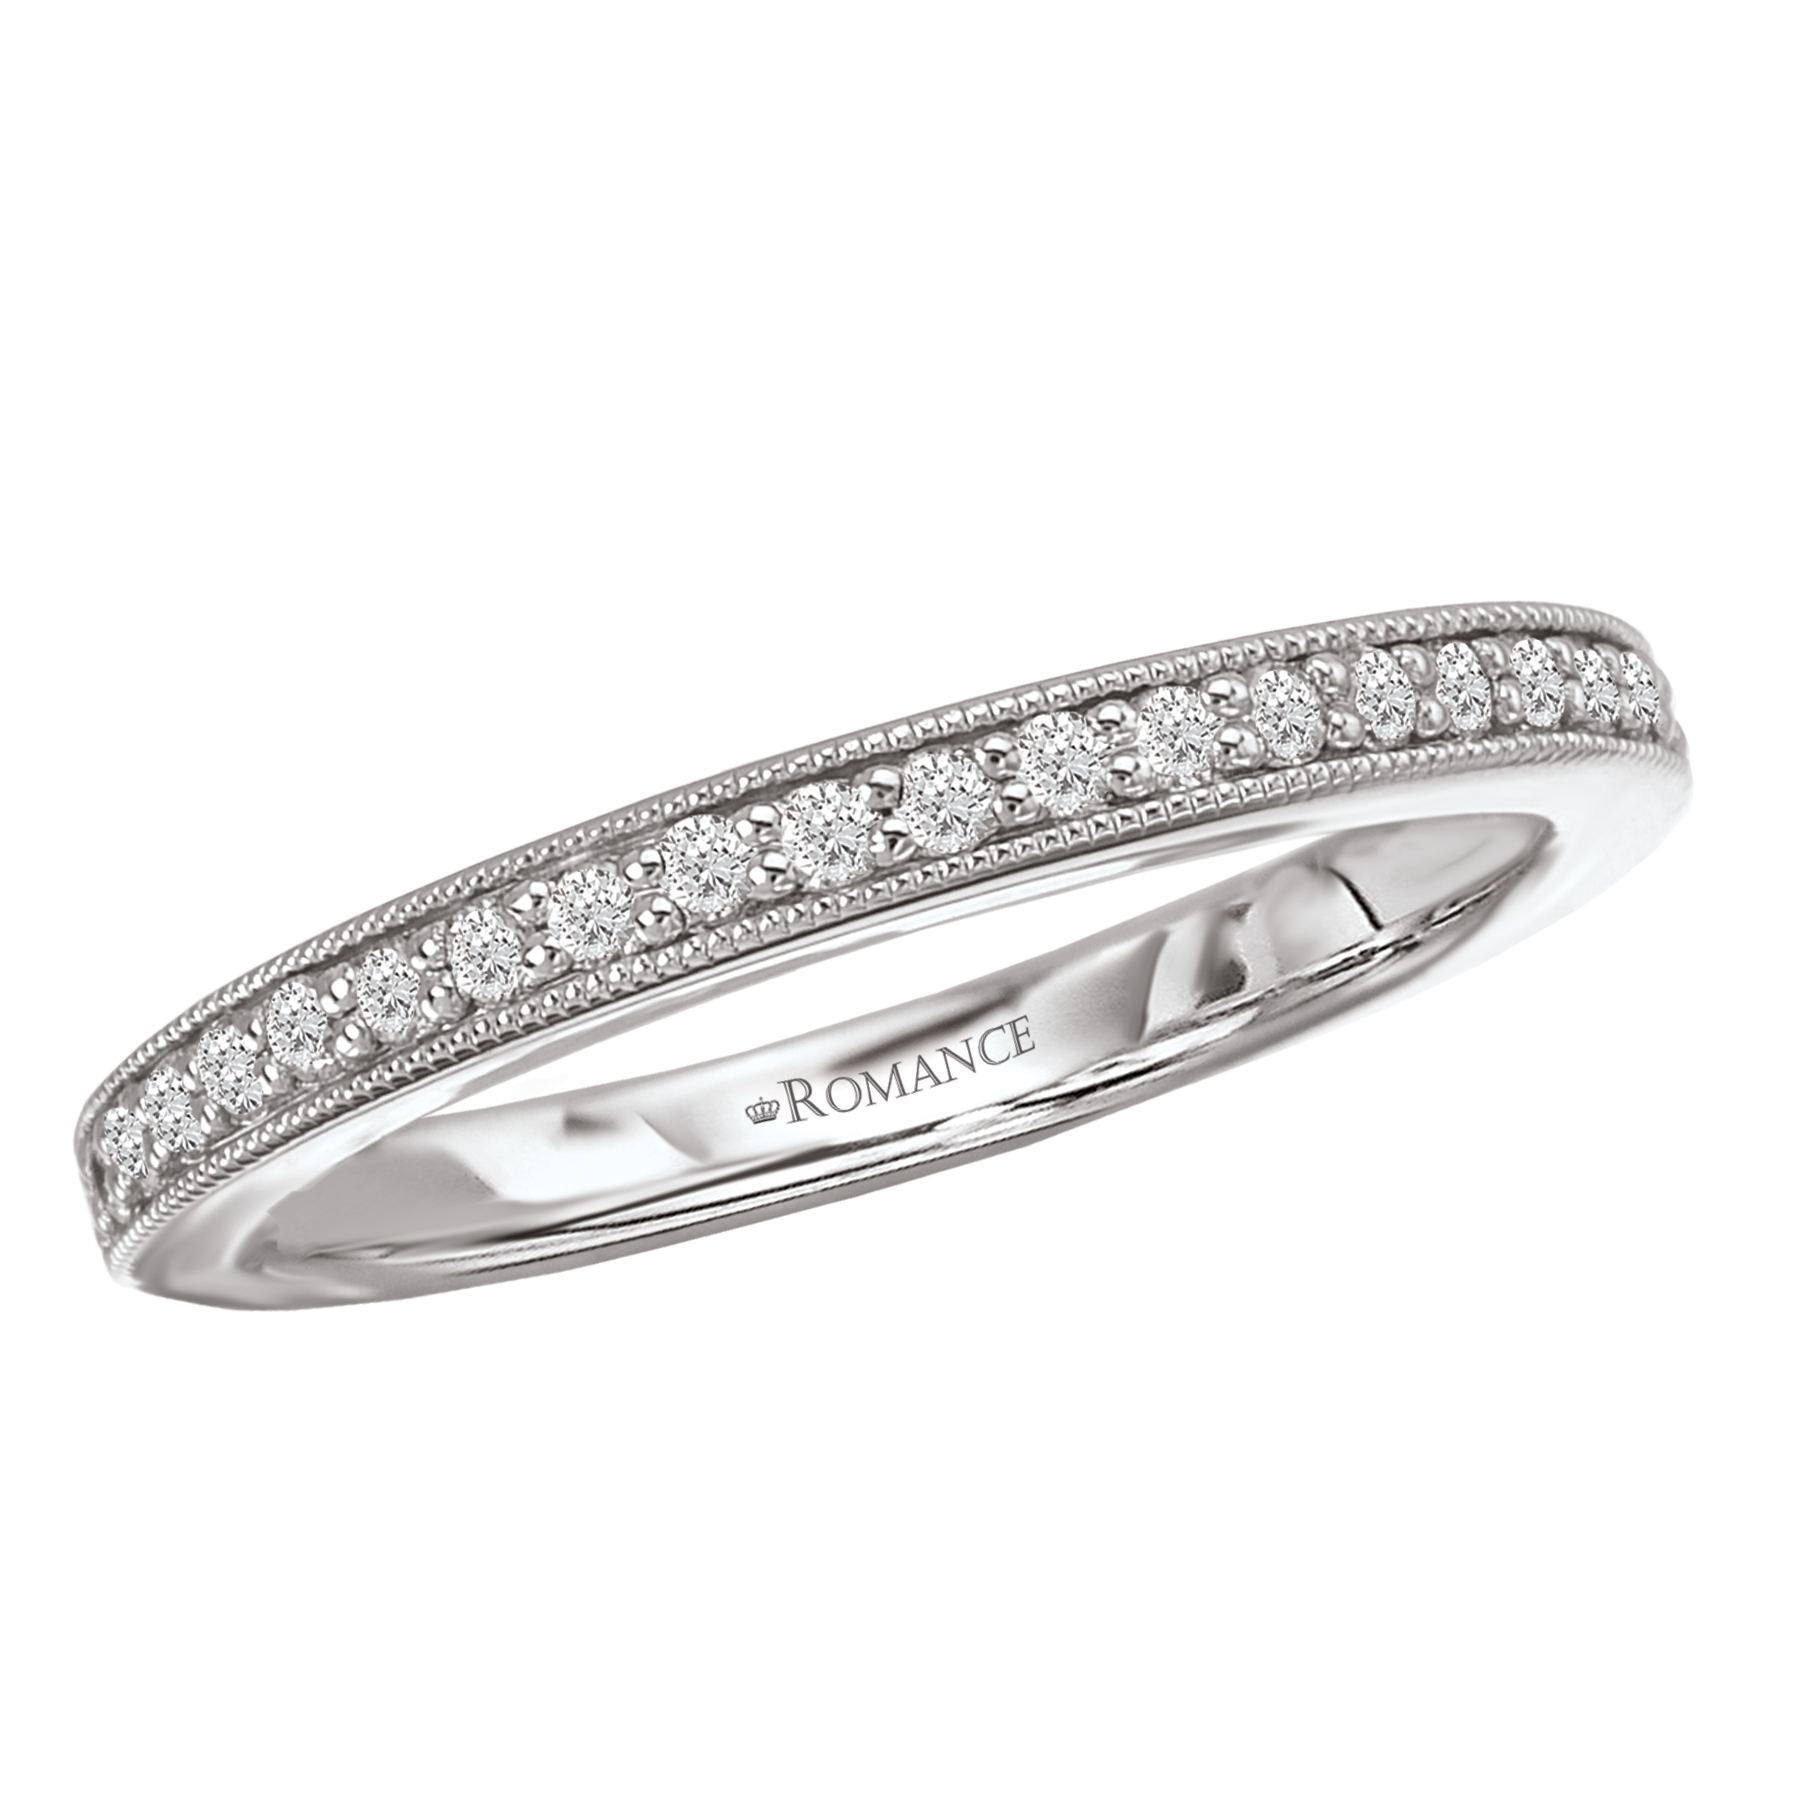 Romance Wedding Bands 117492-W product image